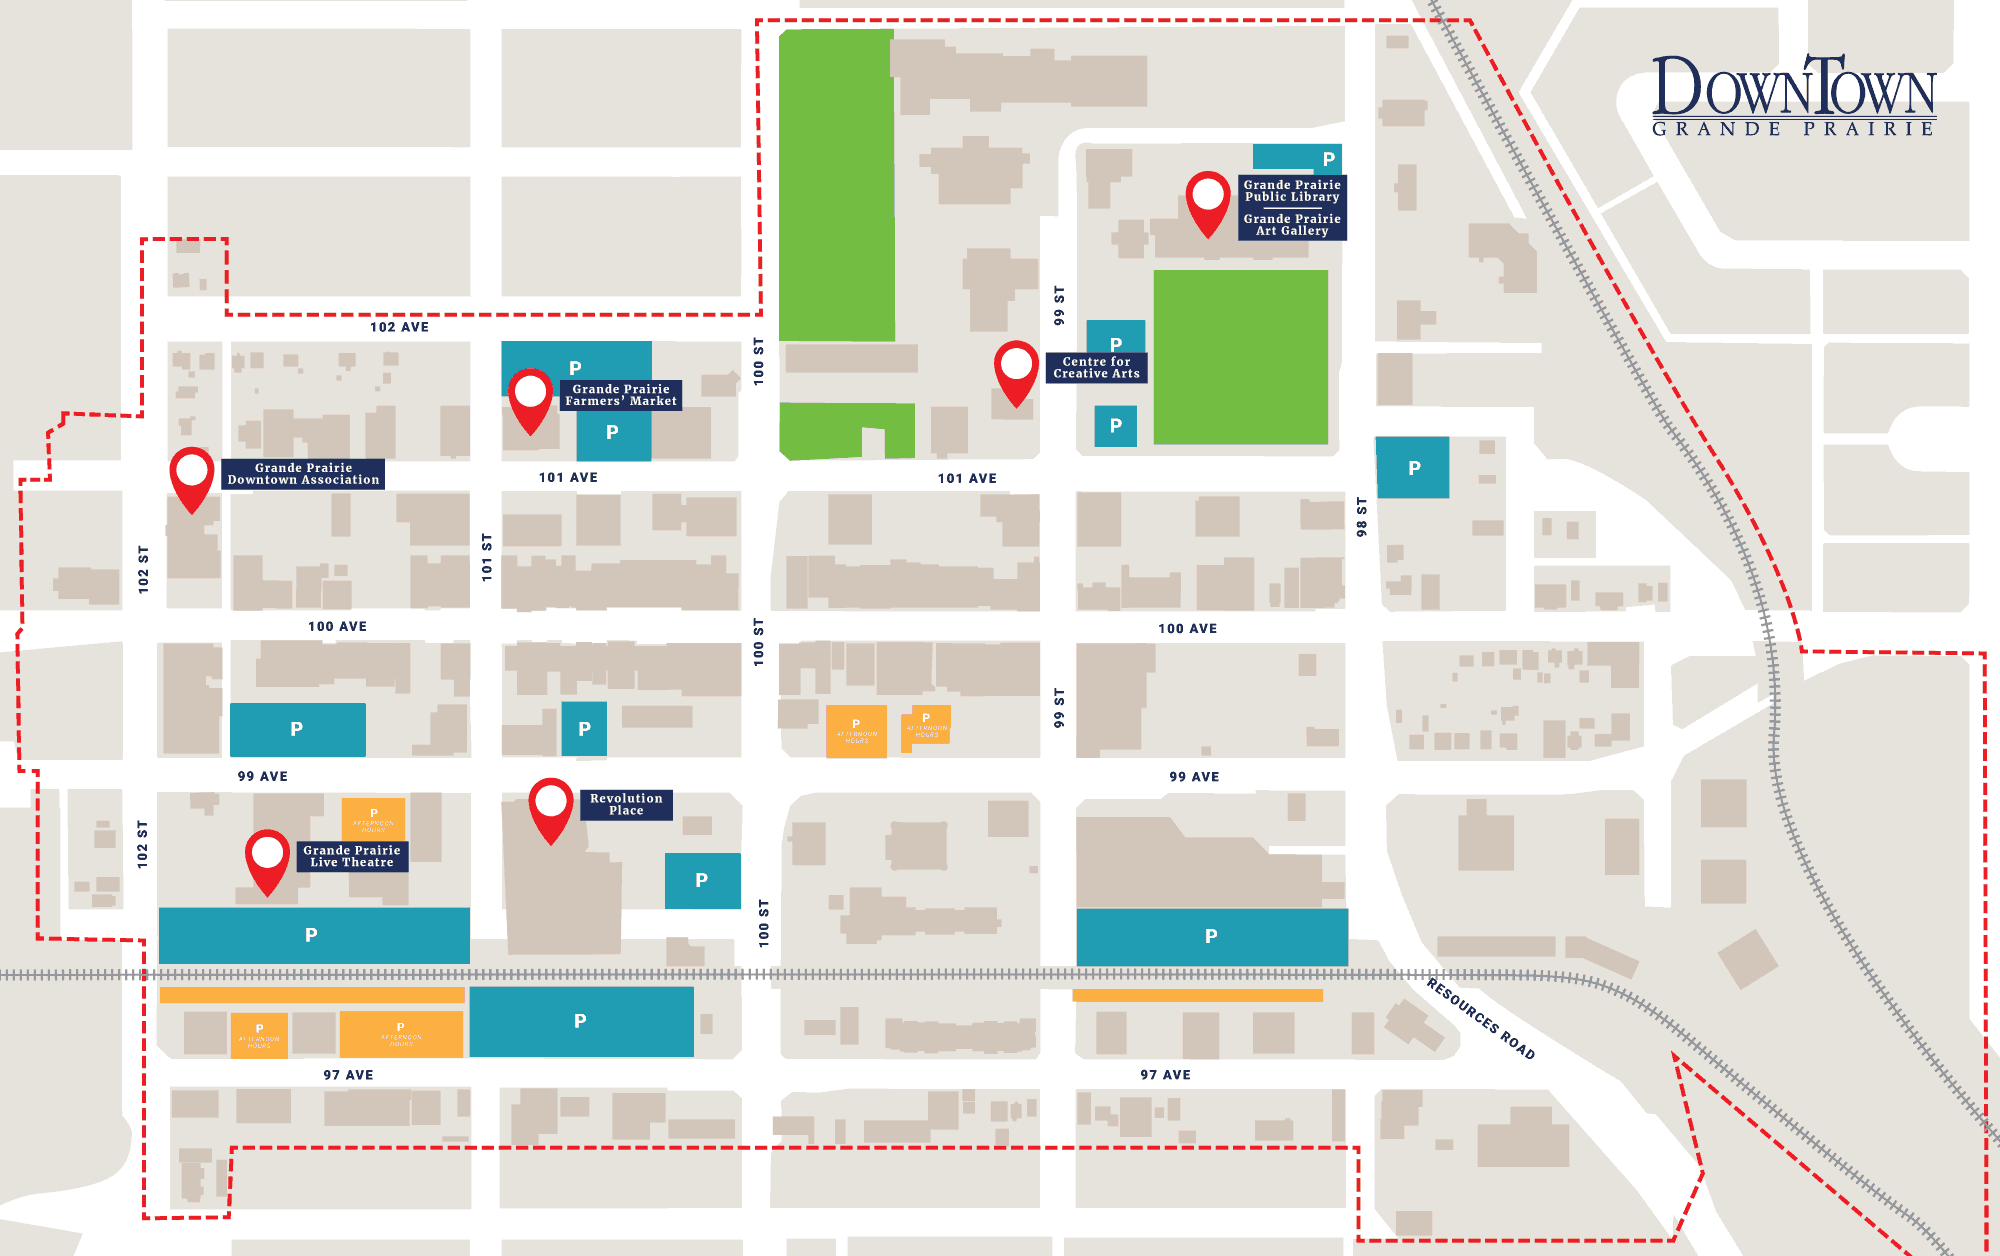 Grande Prairie Downtown Association Footer Map